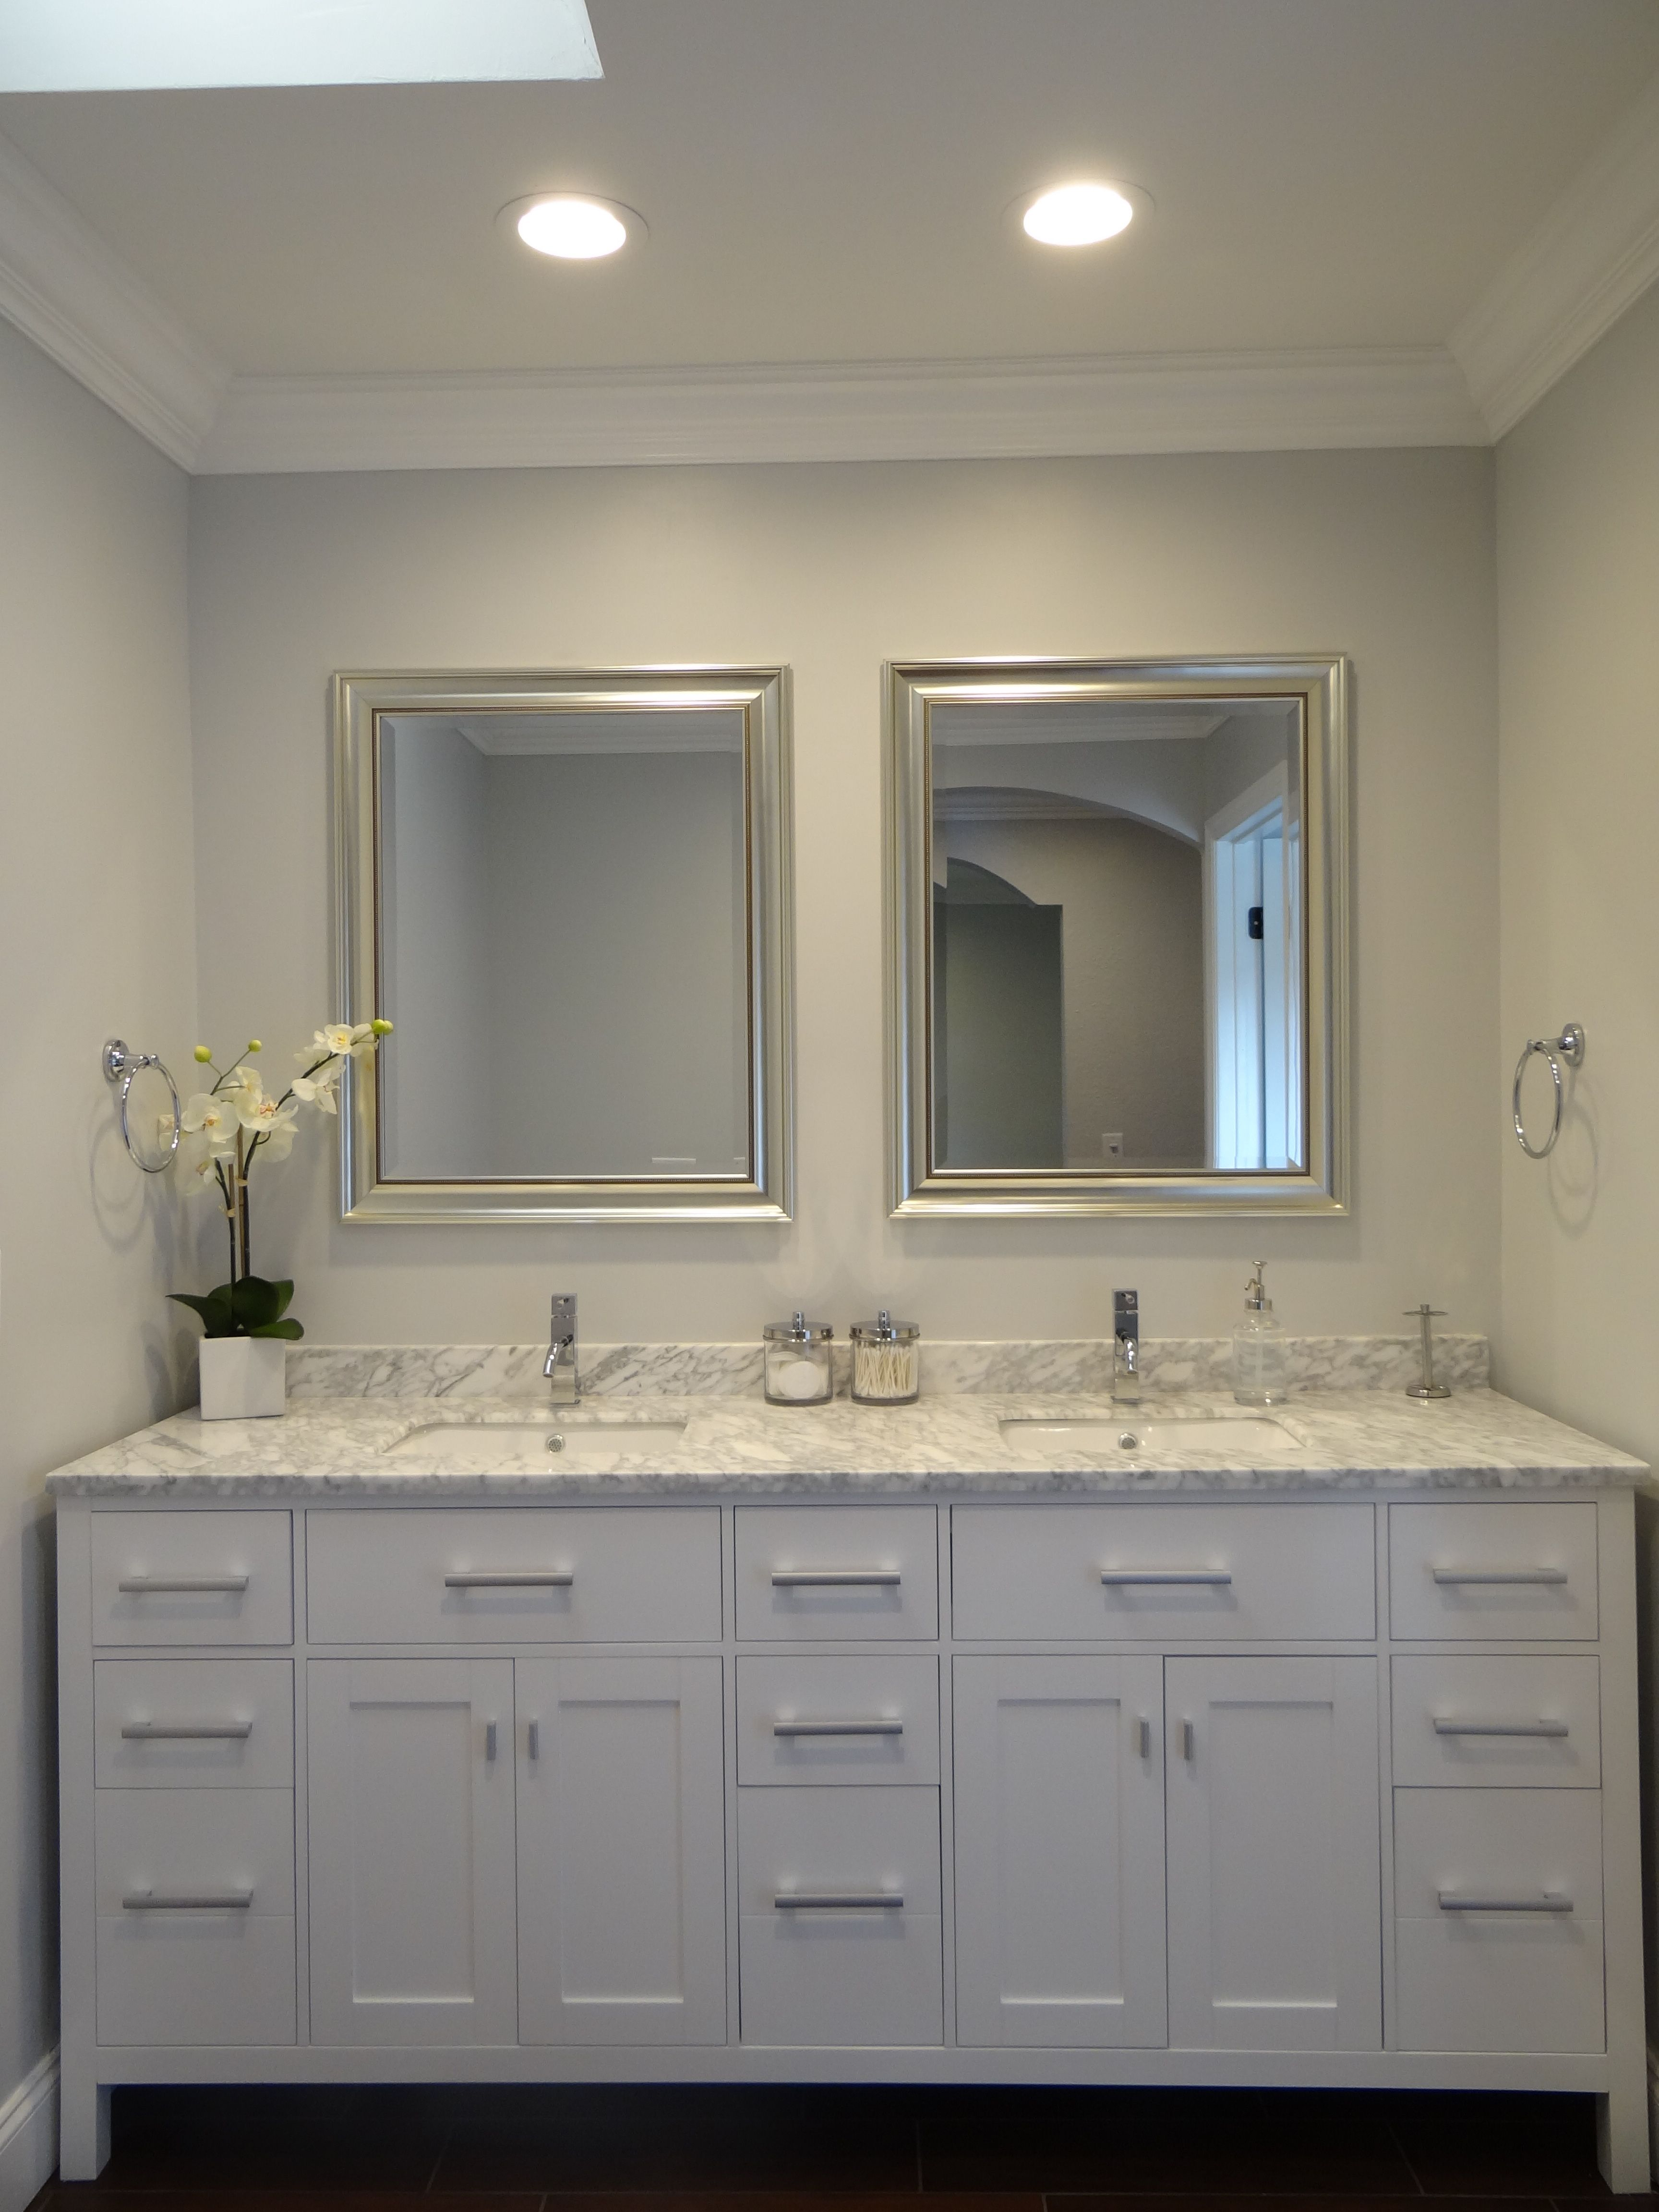 Master Bathroom Suite With Double Vanity And Sherwin